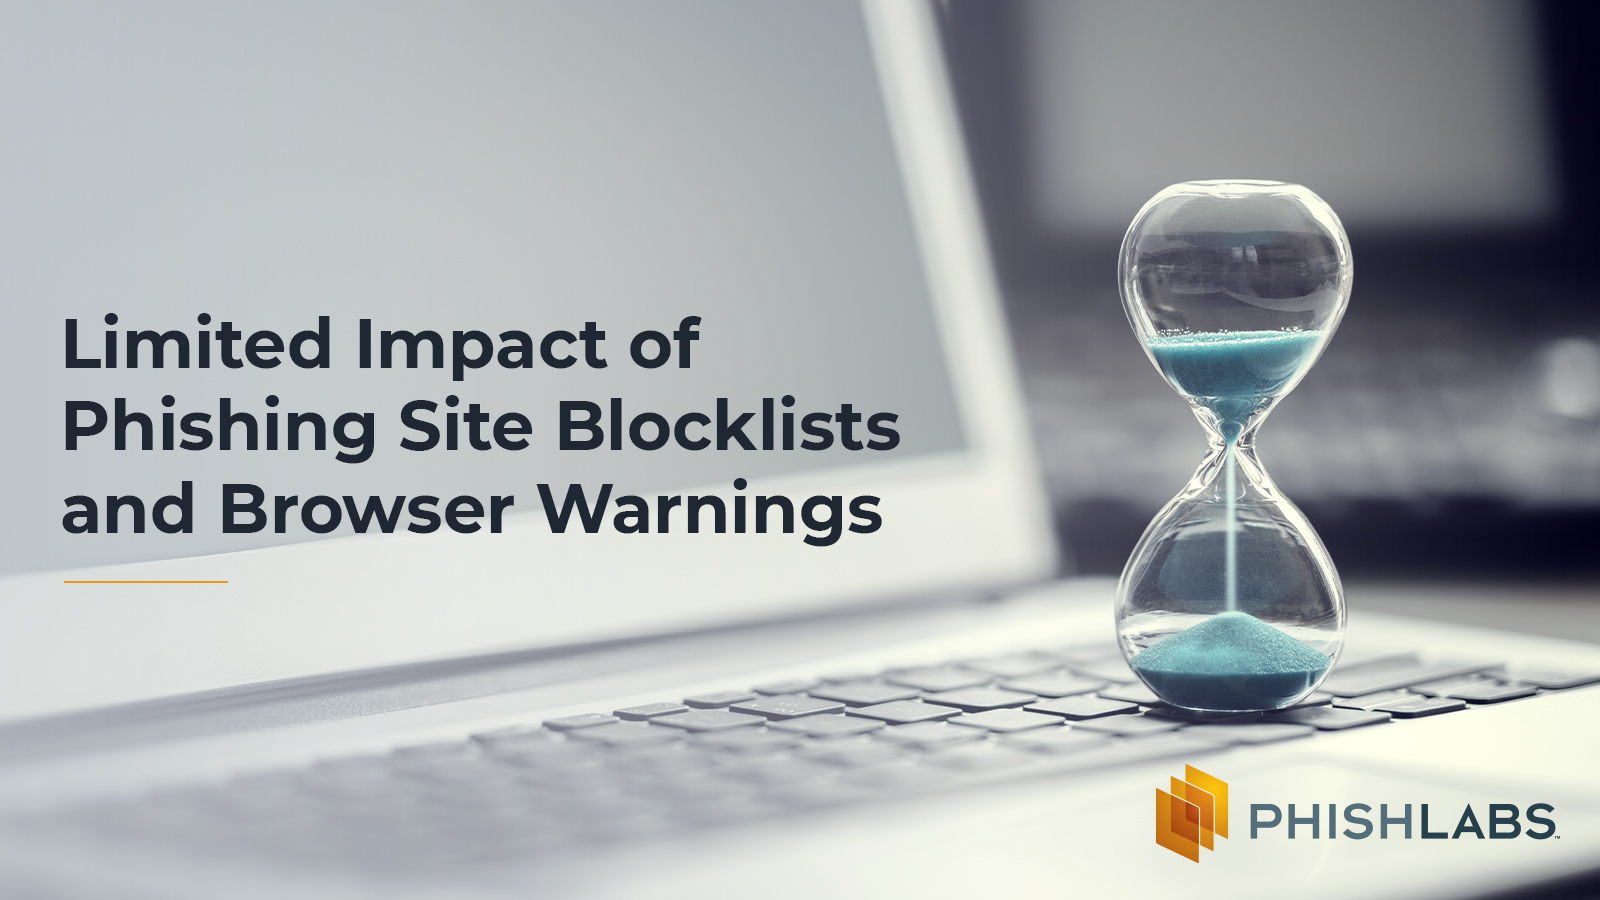 Limited Impact of Phishing Site Blocklists and Browser Warnings